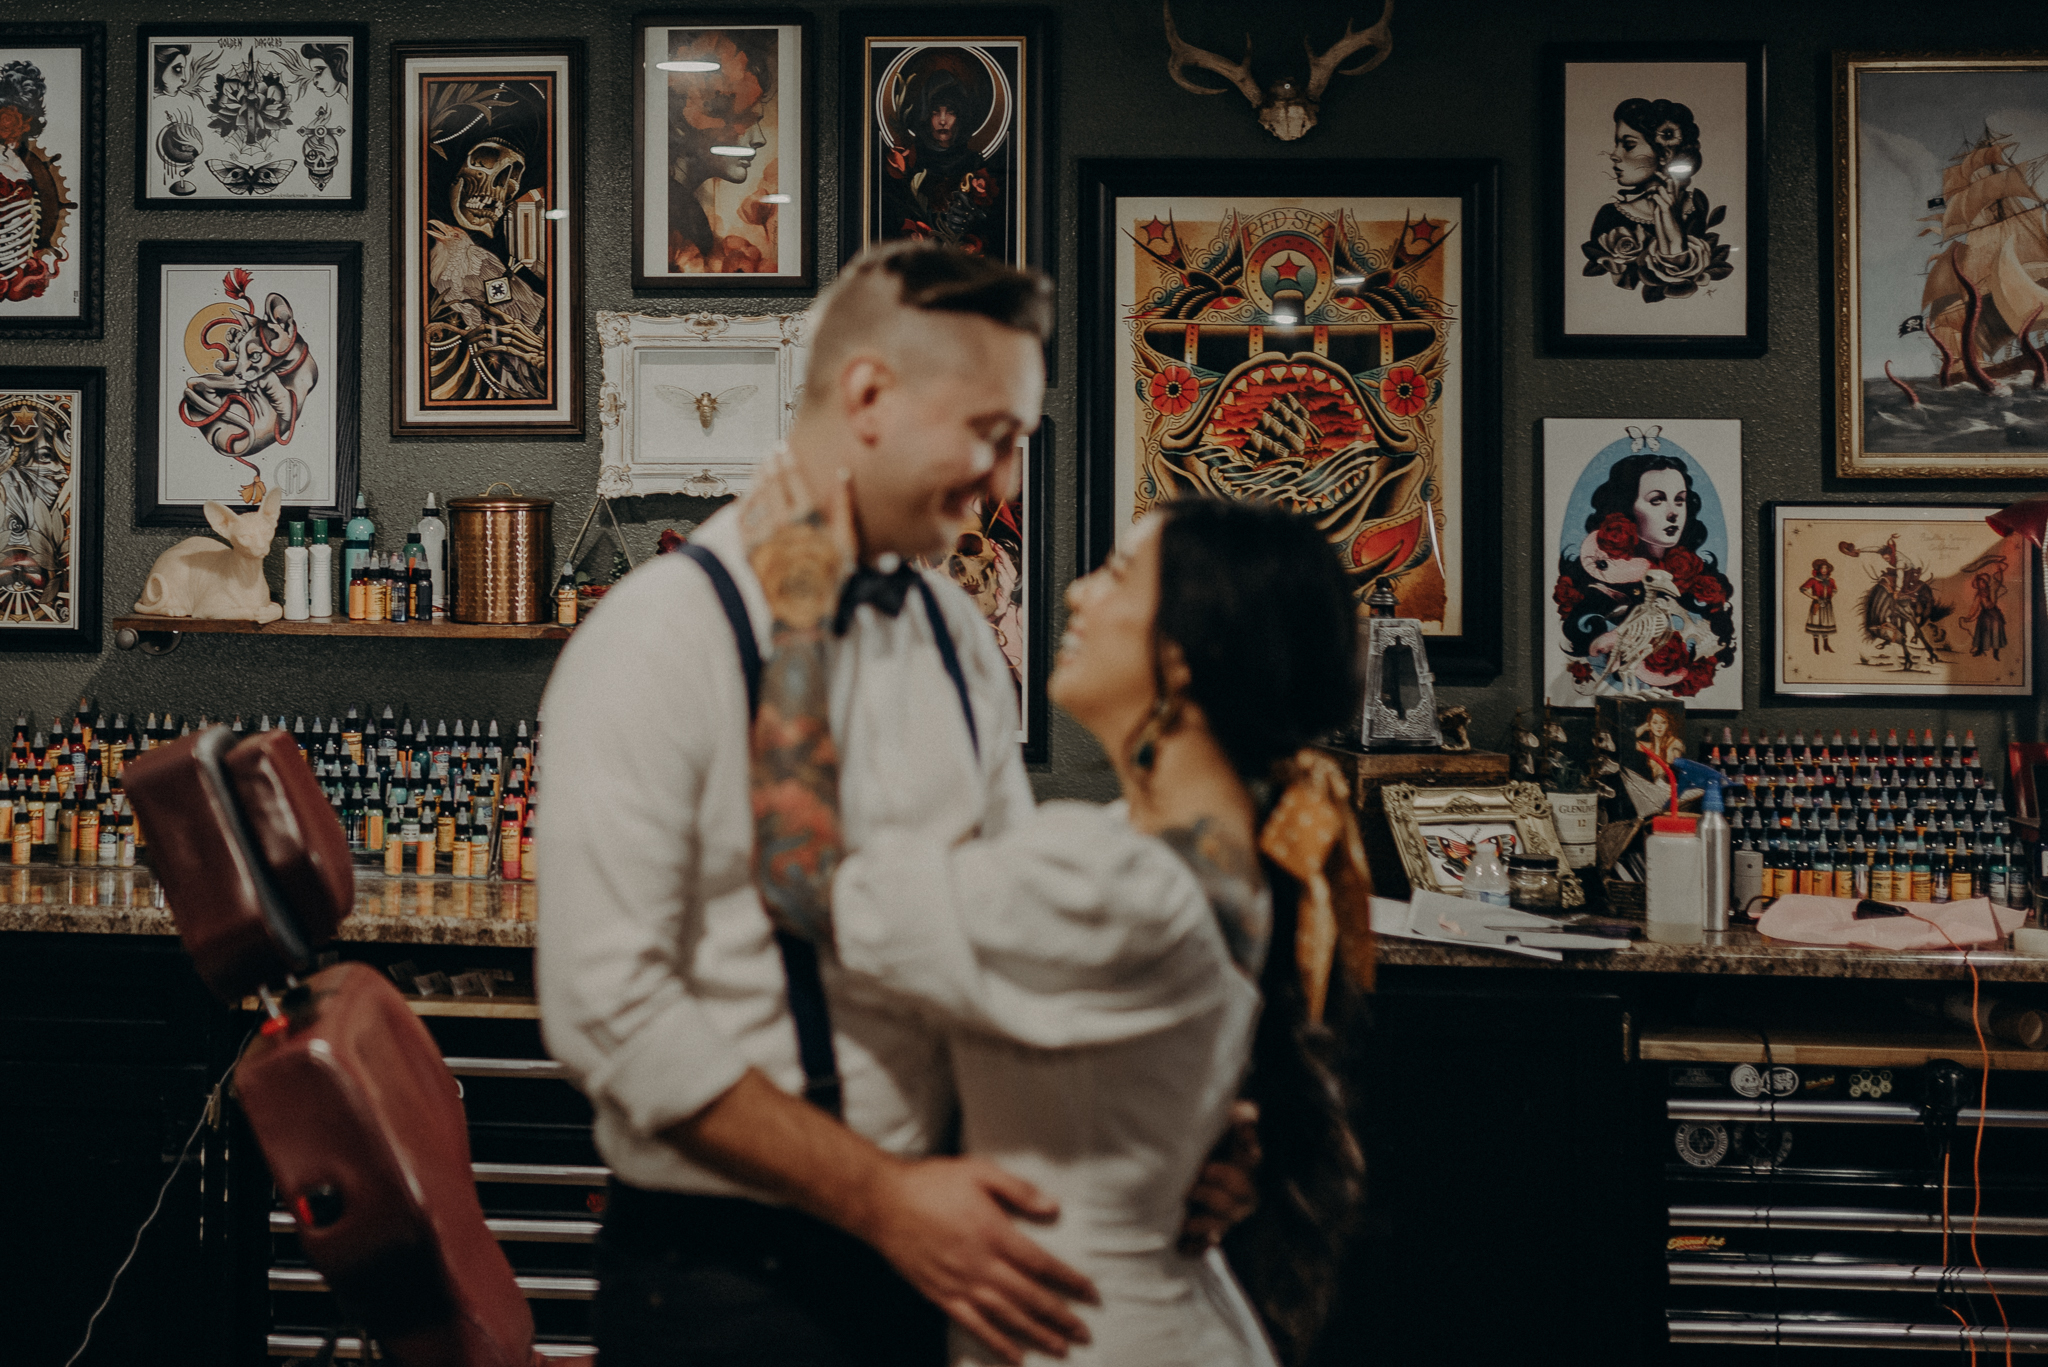 Wedding Photographer in LA - Los Angeles Wedding Photos - Tattoo Shop Engagement Session - IsaiahAndTaylor.com-014.jpg